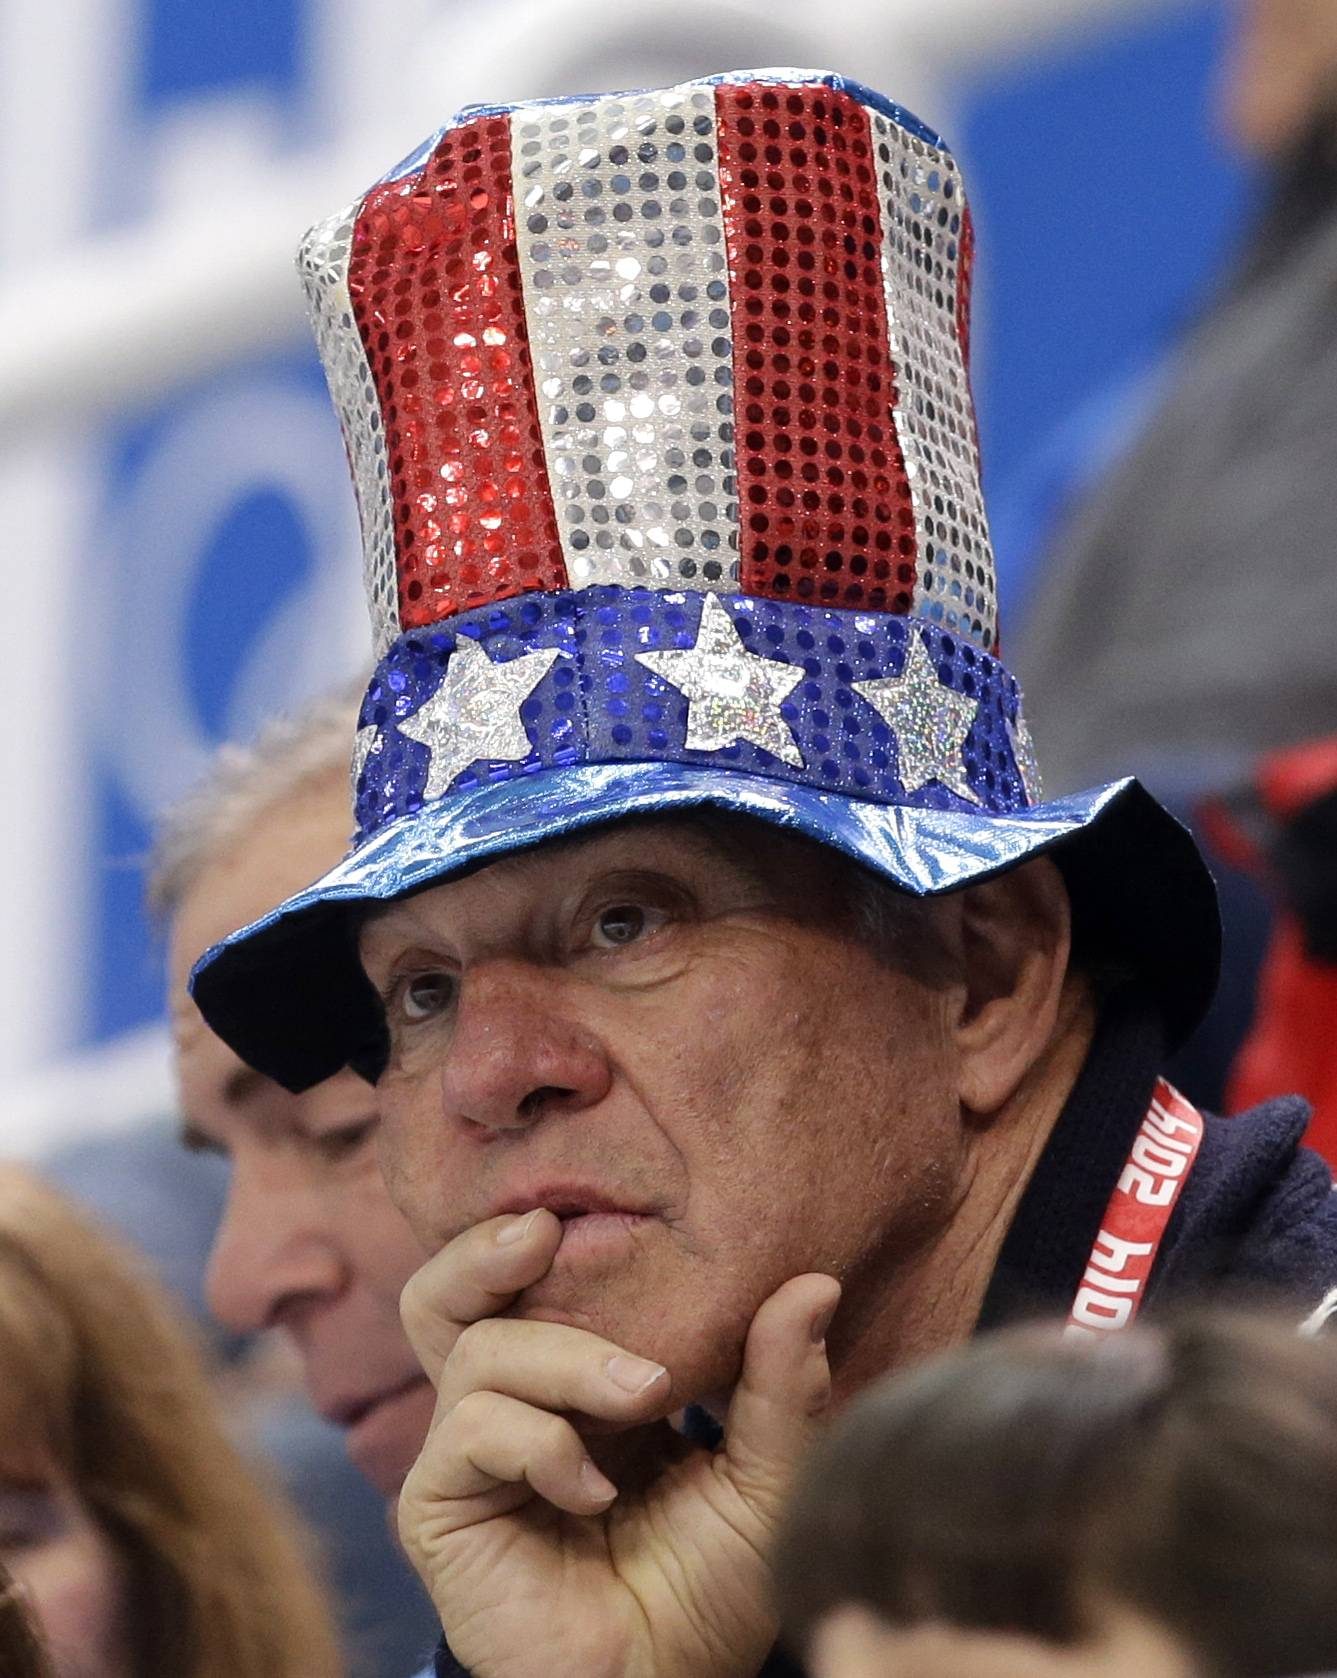 A spectator wearing a hat in the colours of the U.S. flag watches the pairs free skate figure skating competition.